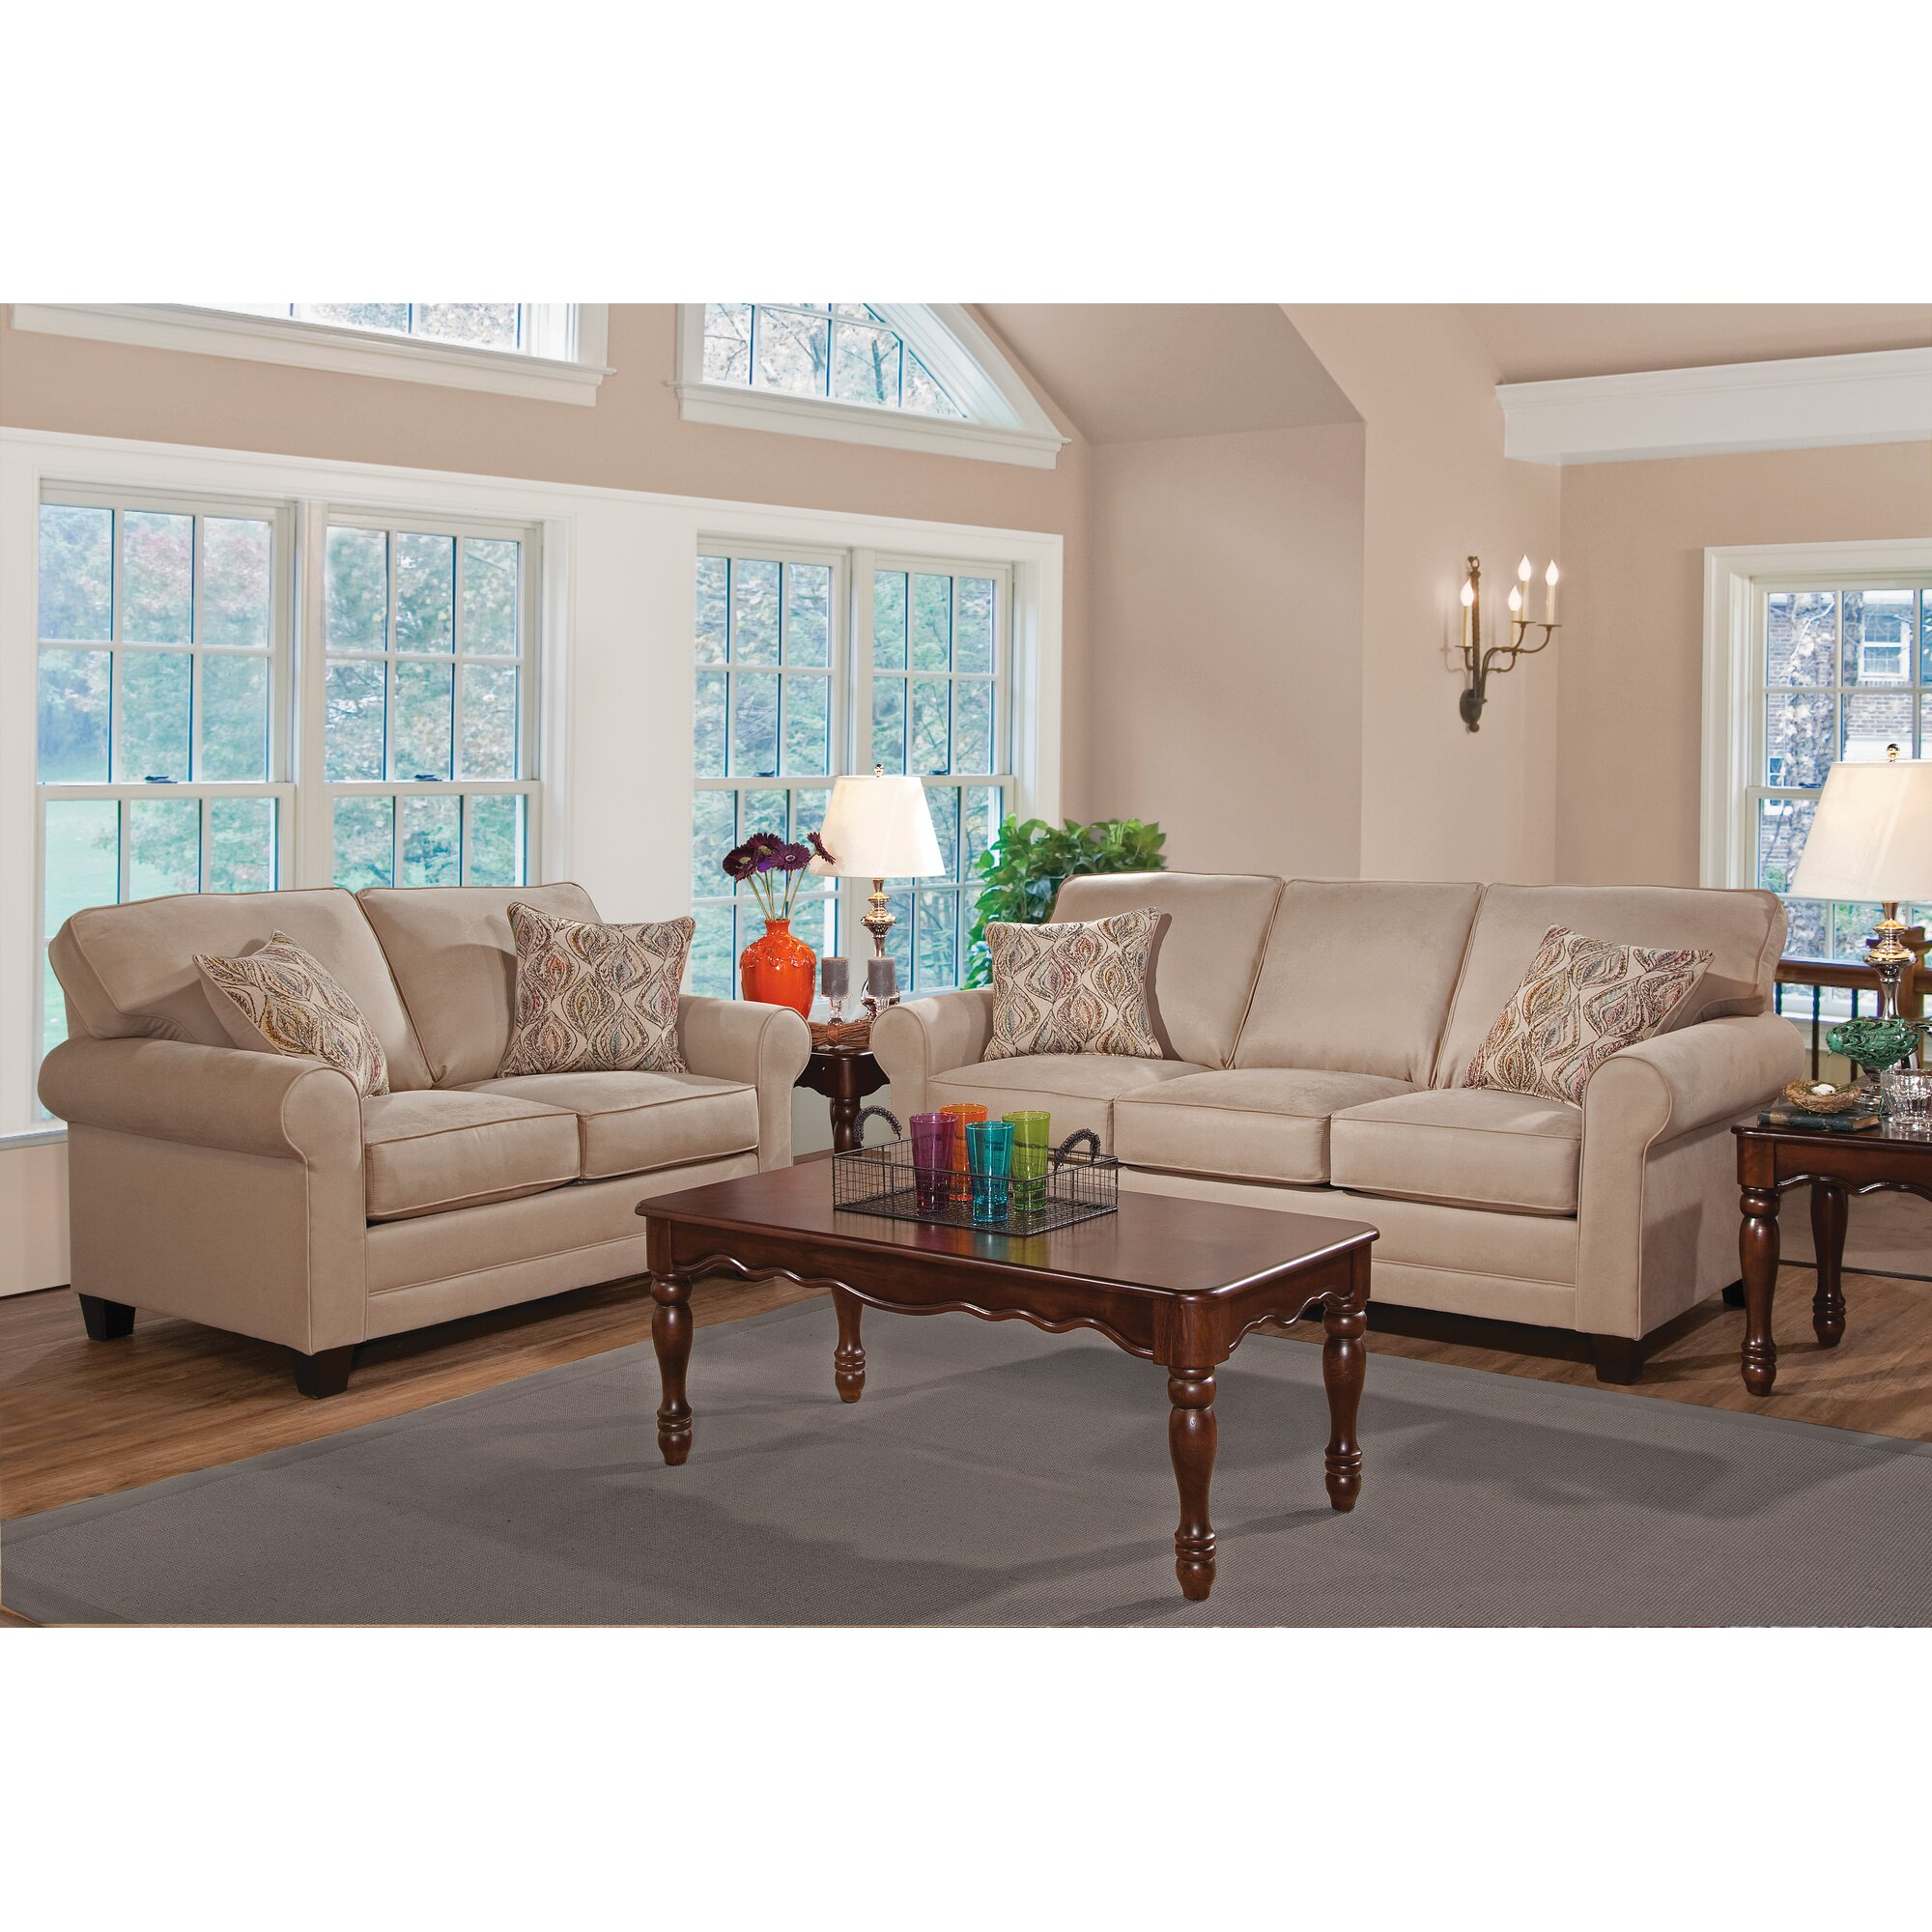 Alcott hill living room collection reviews wayfair for Living room of satoshi review